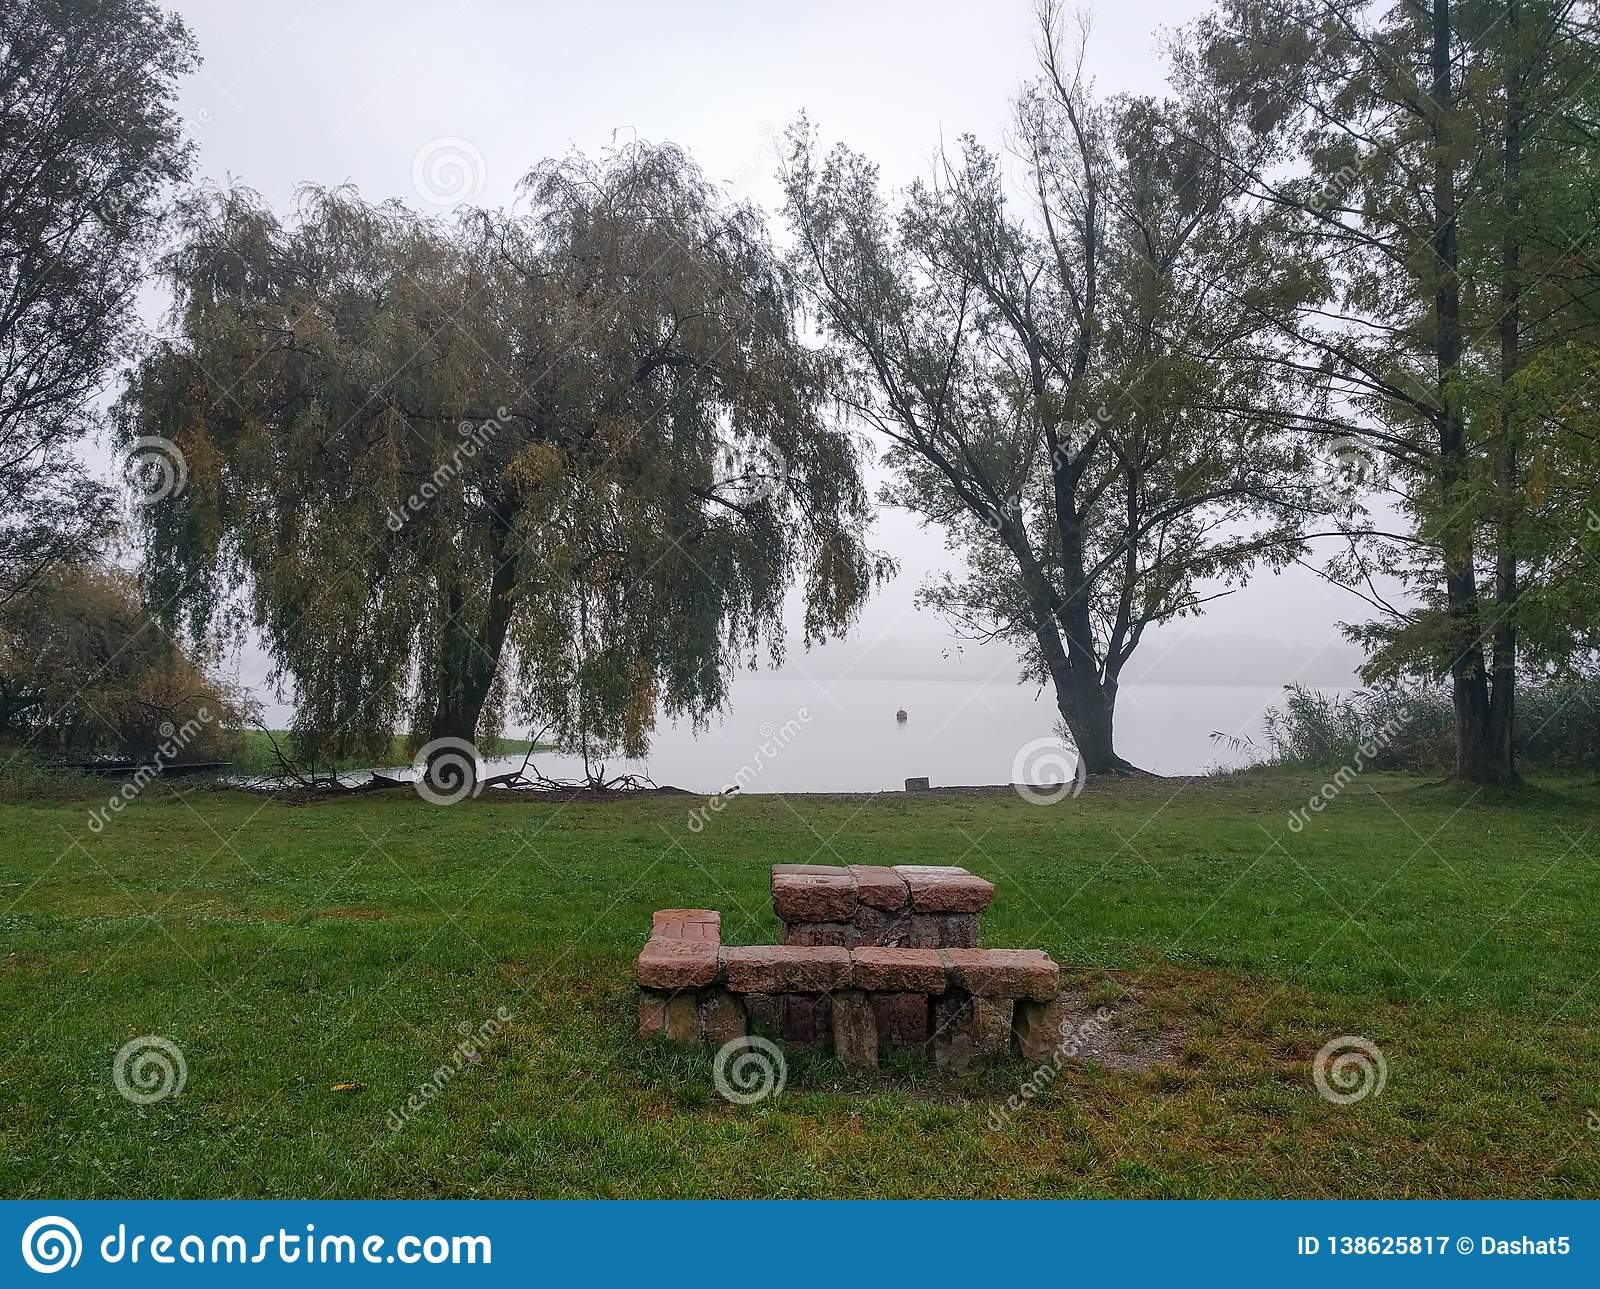 Recreation area with green field, bench and table near lake